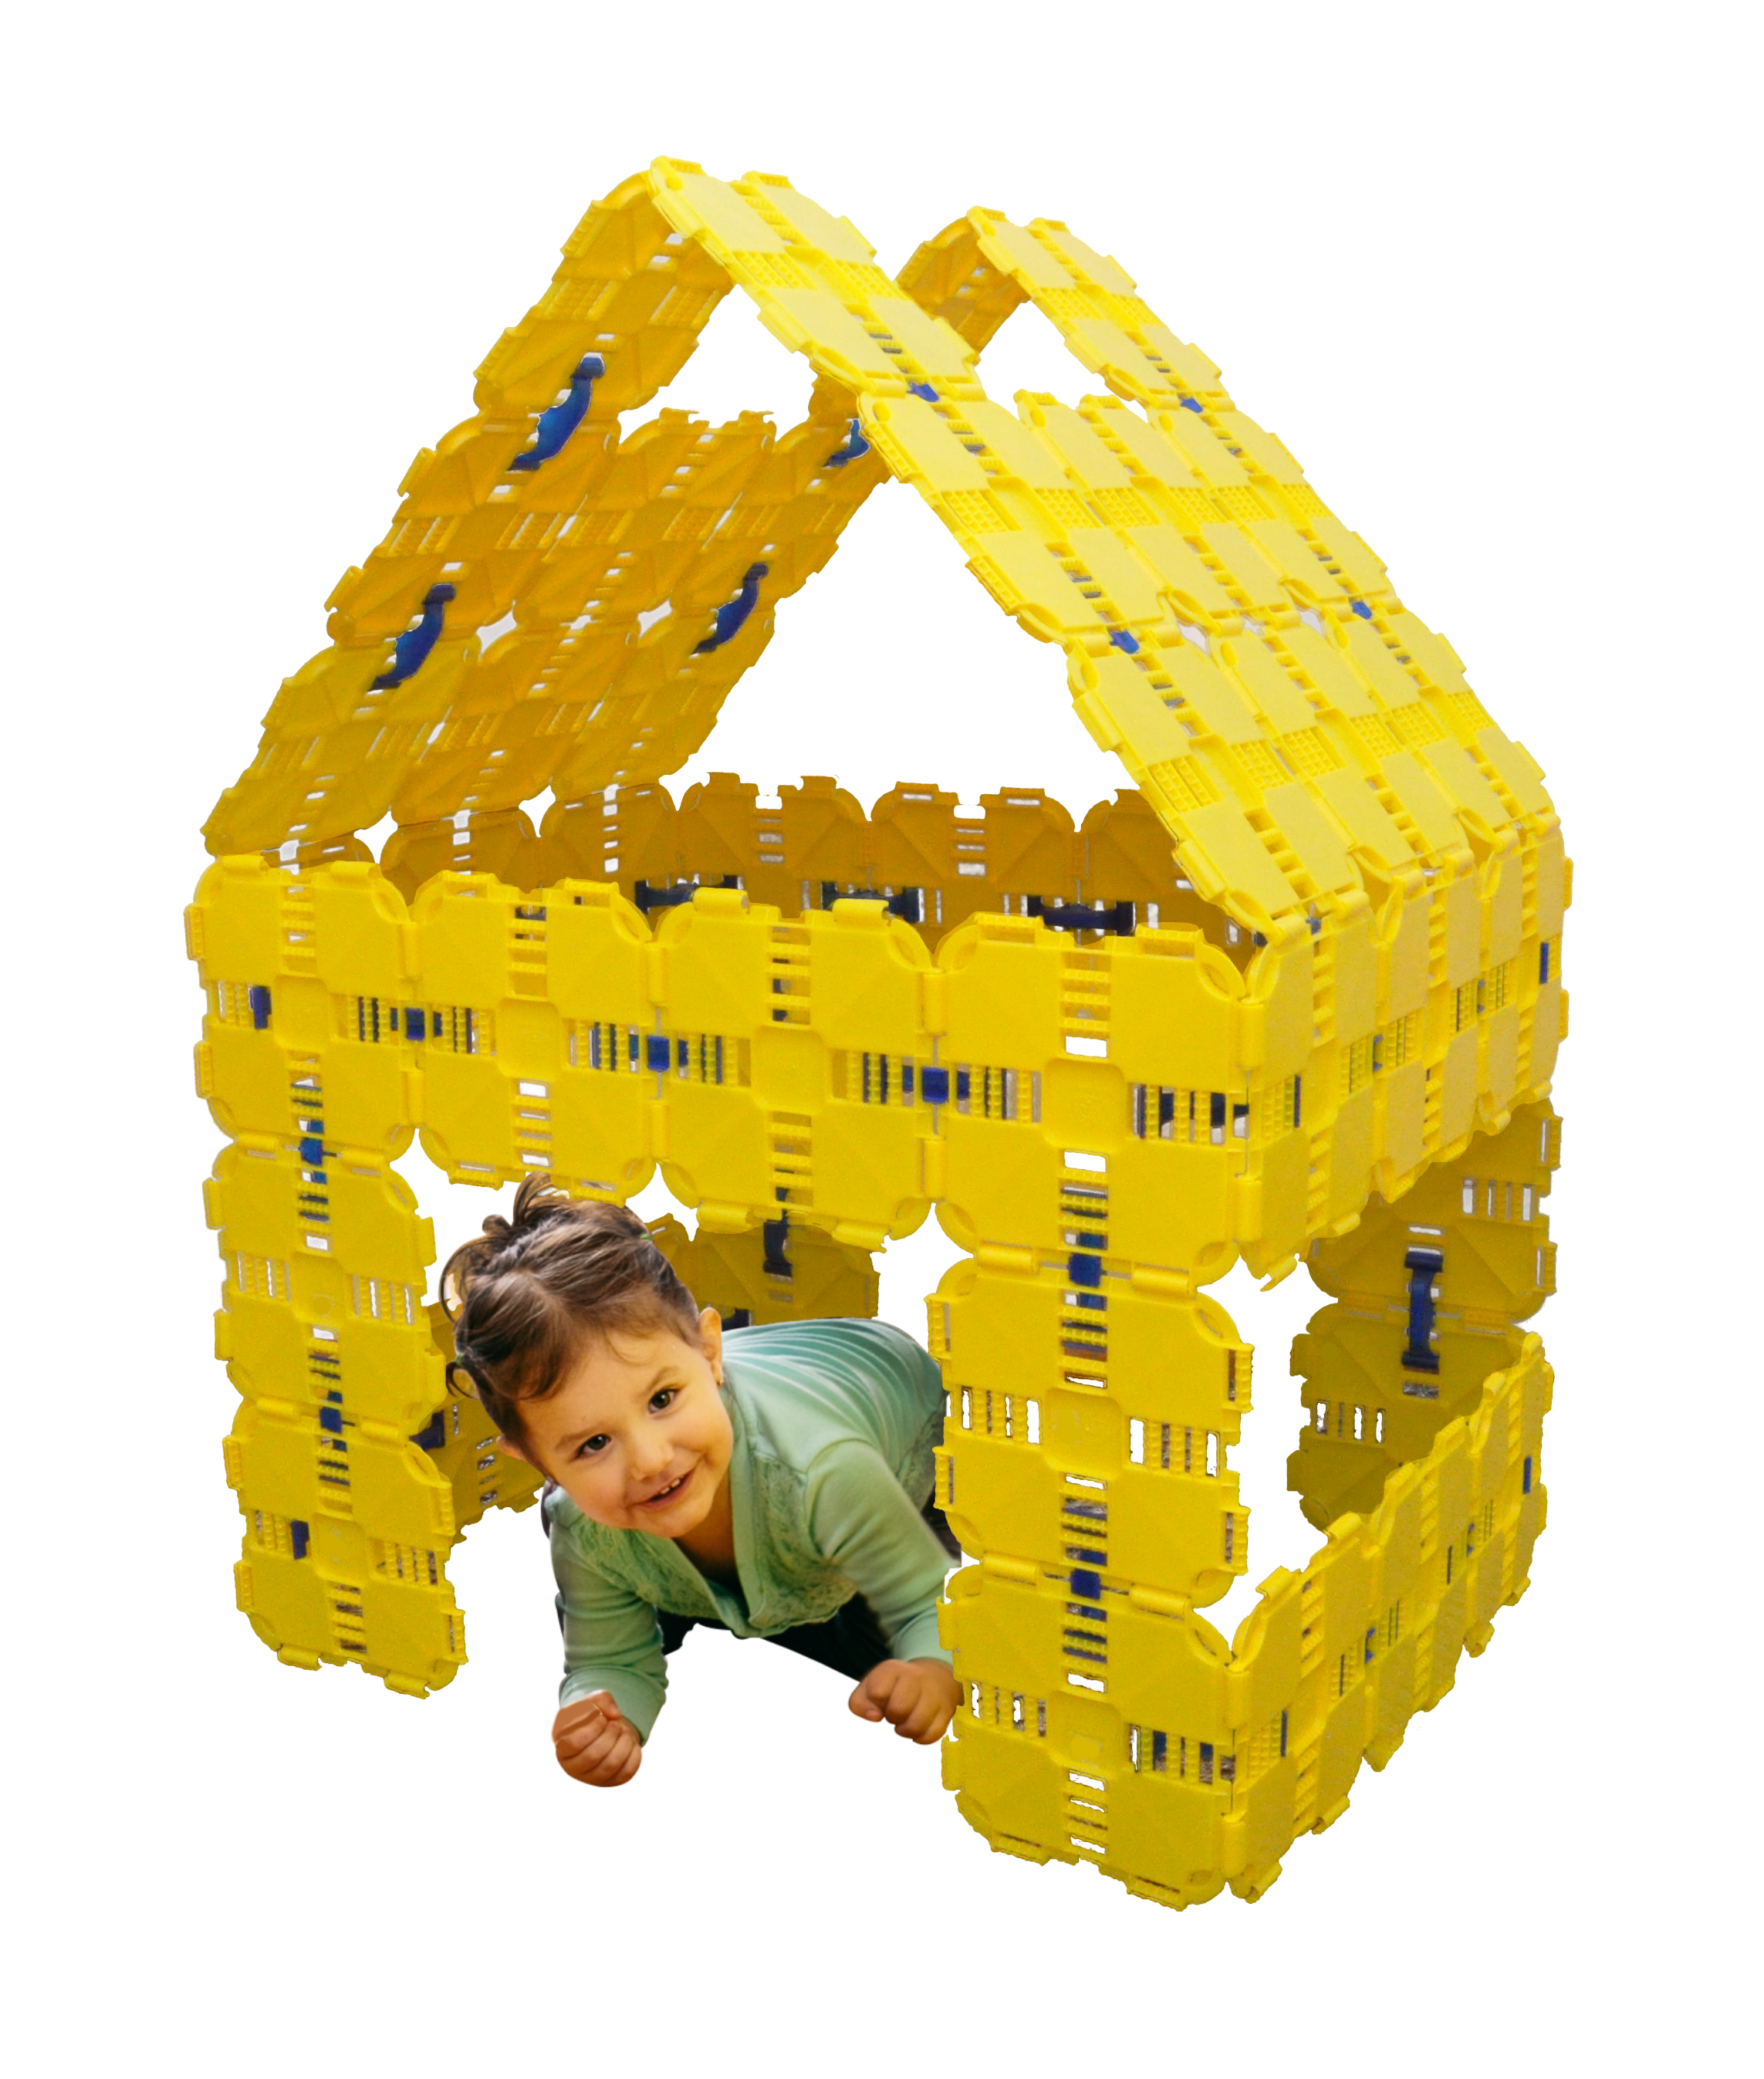 A house built from yellow Fort Boards